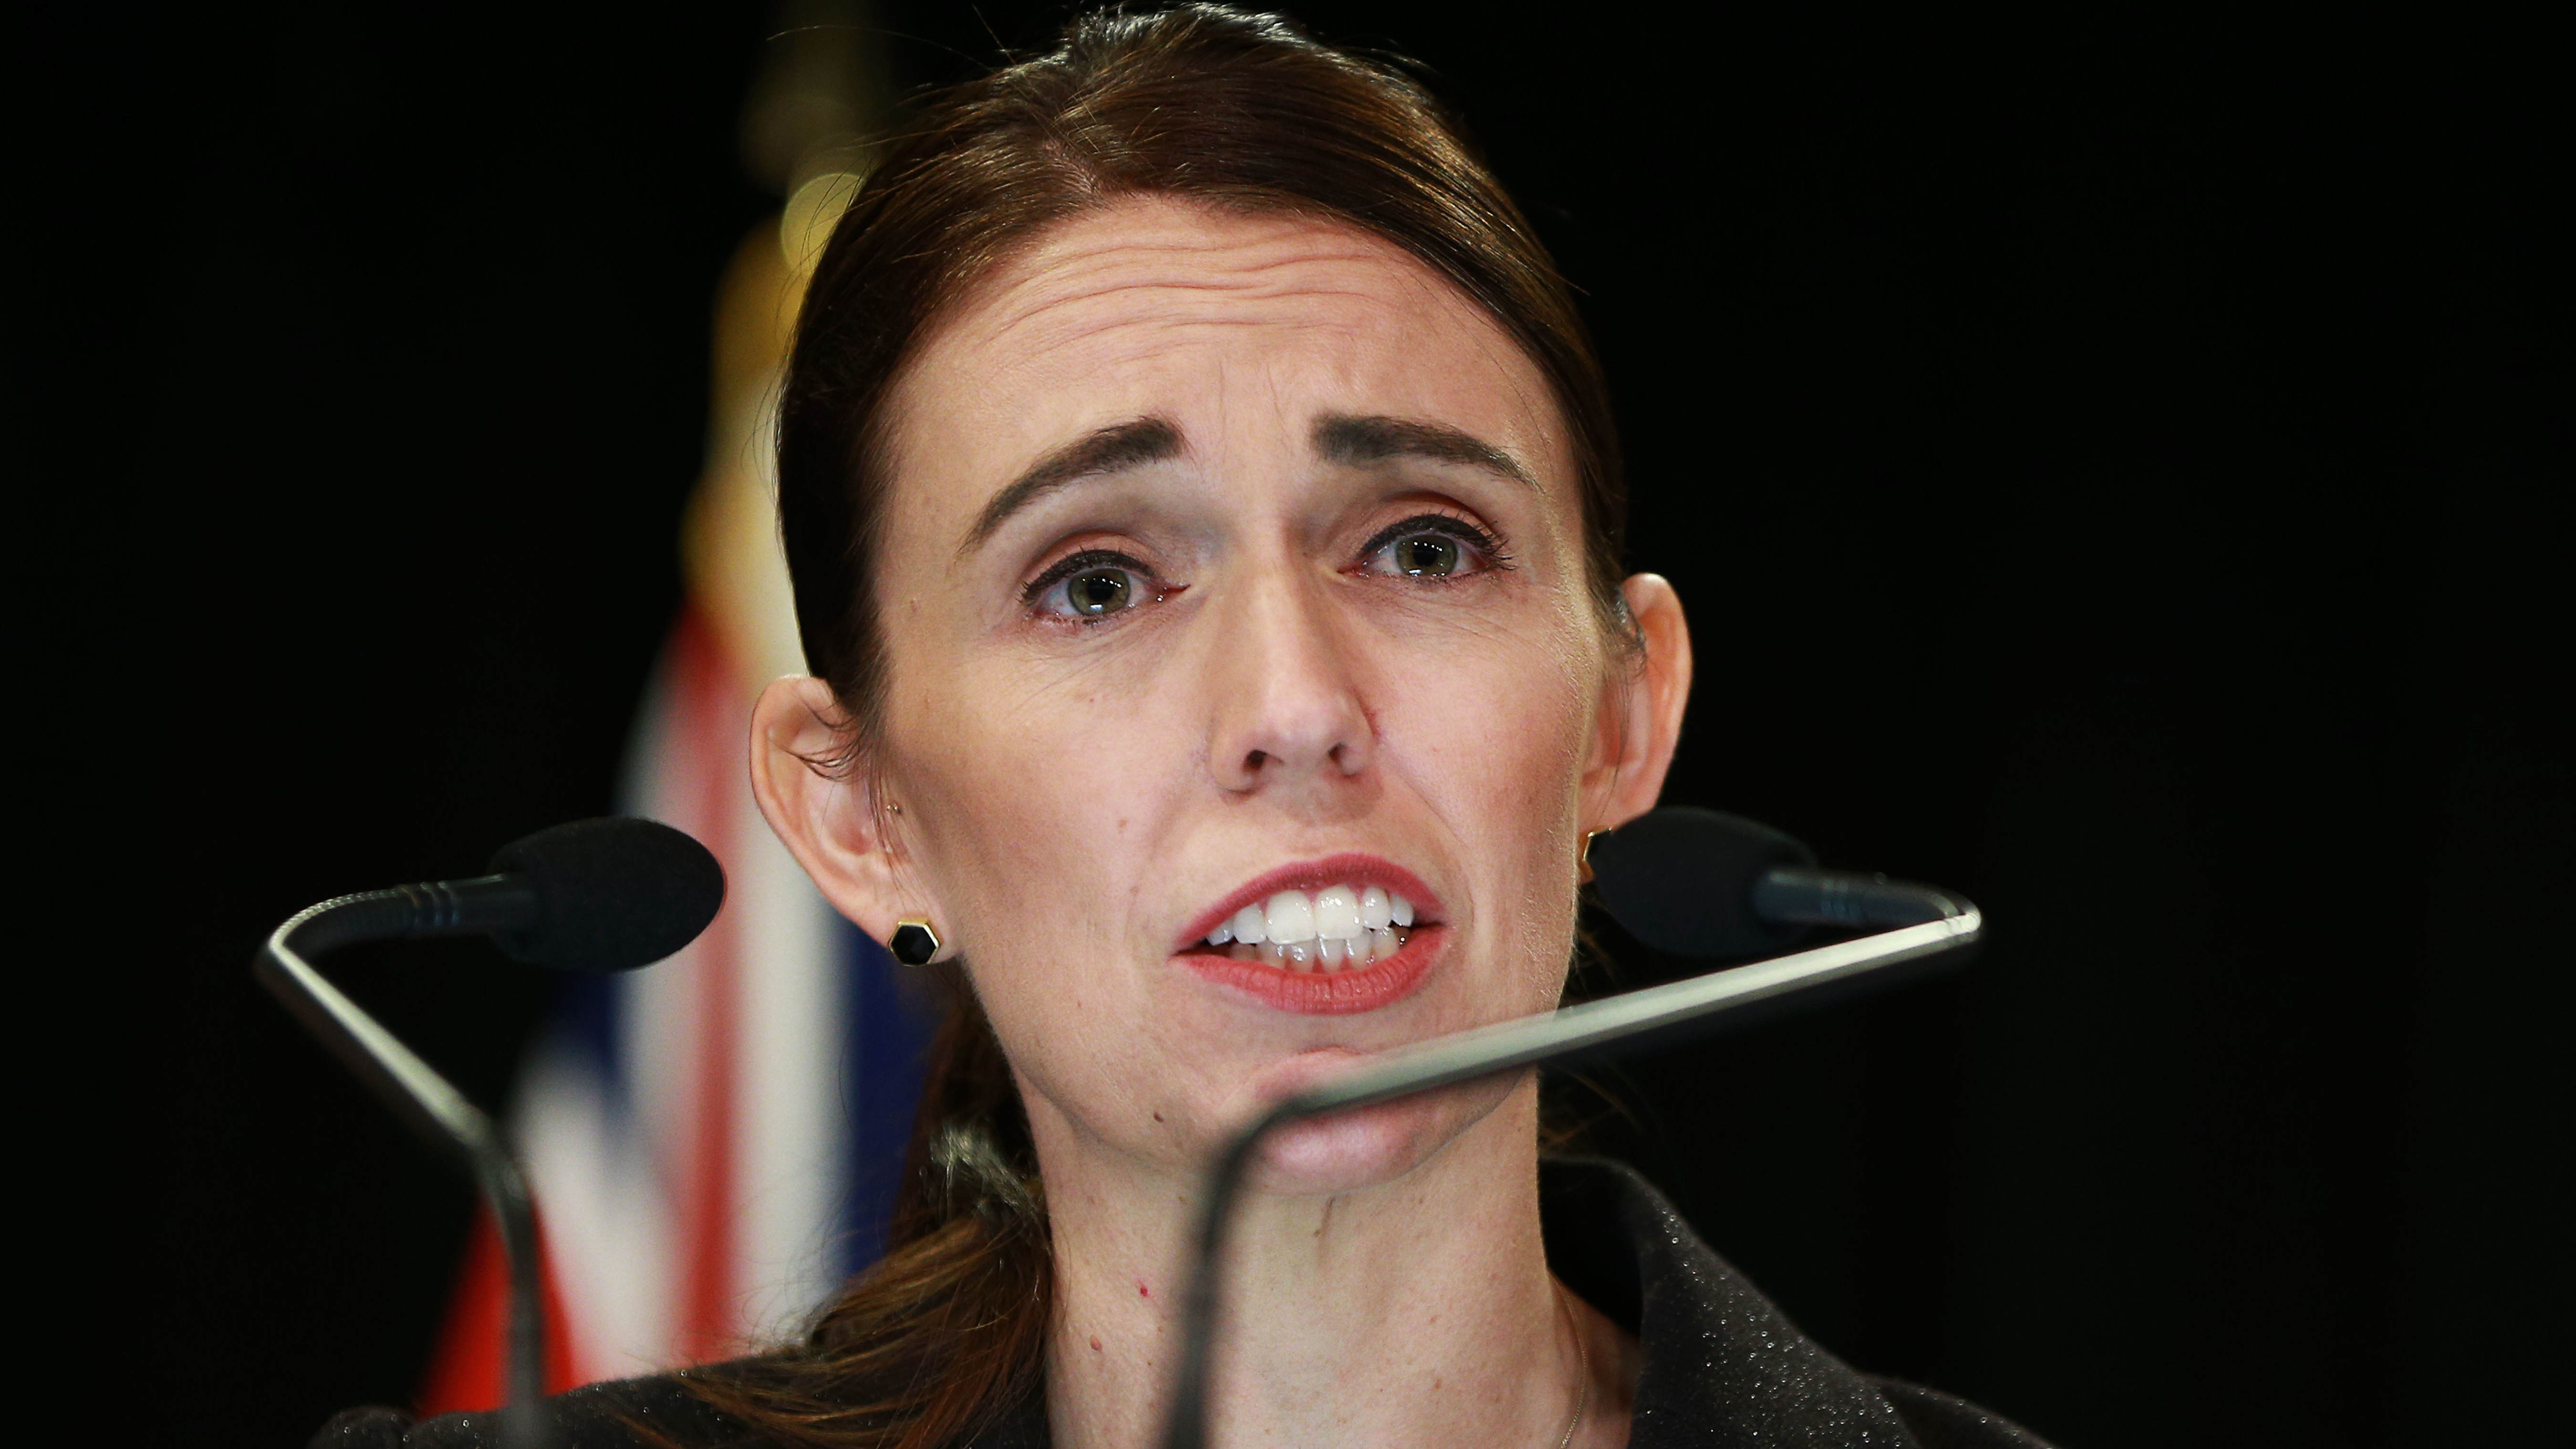 New Zealand Banning Weapons Like Those Used In Mosque Attacks In Christchurch